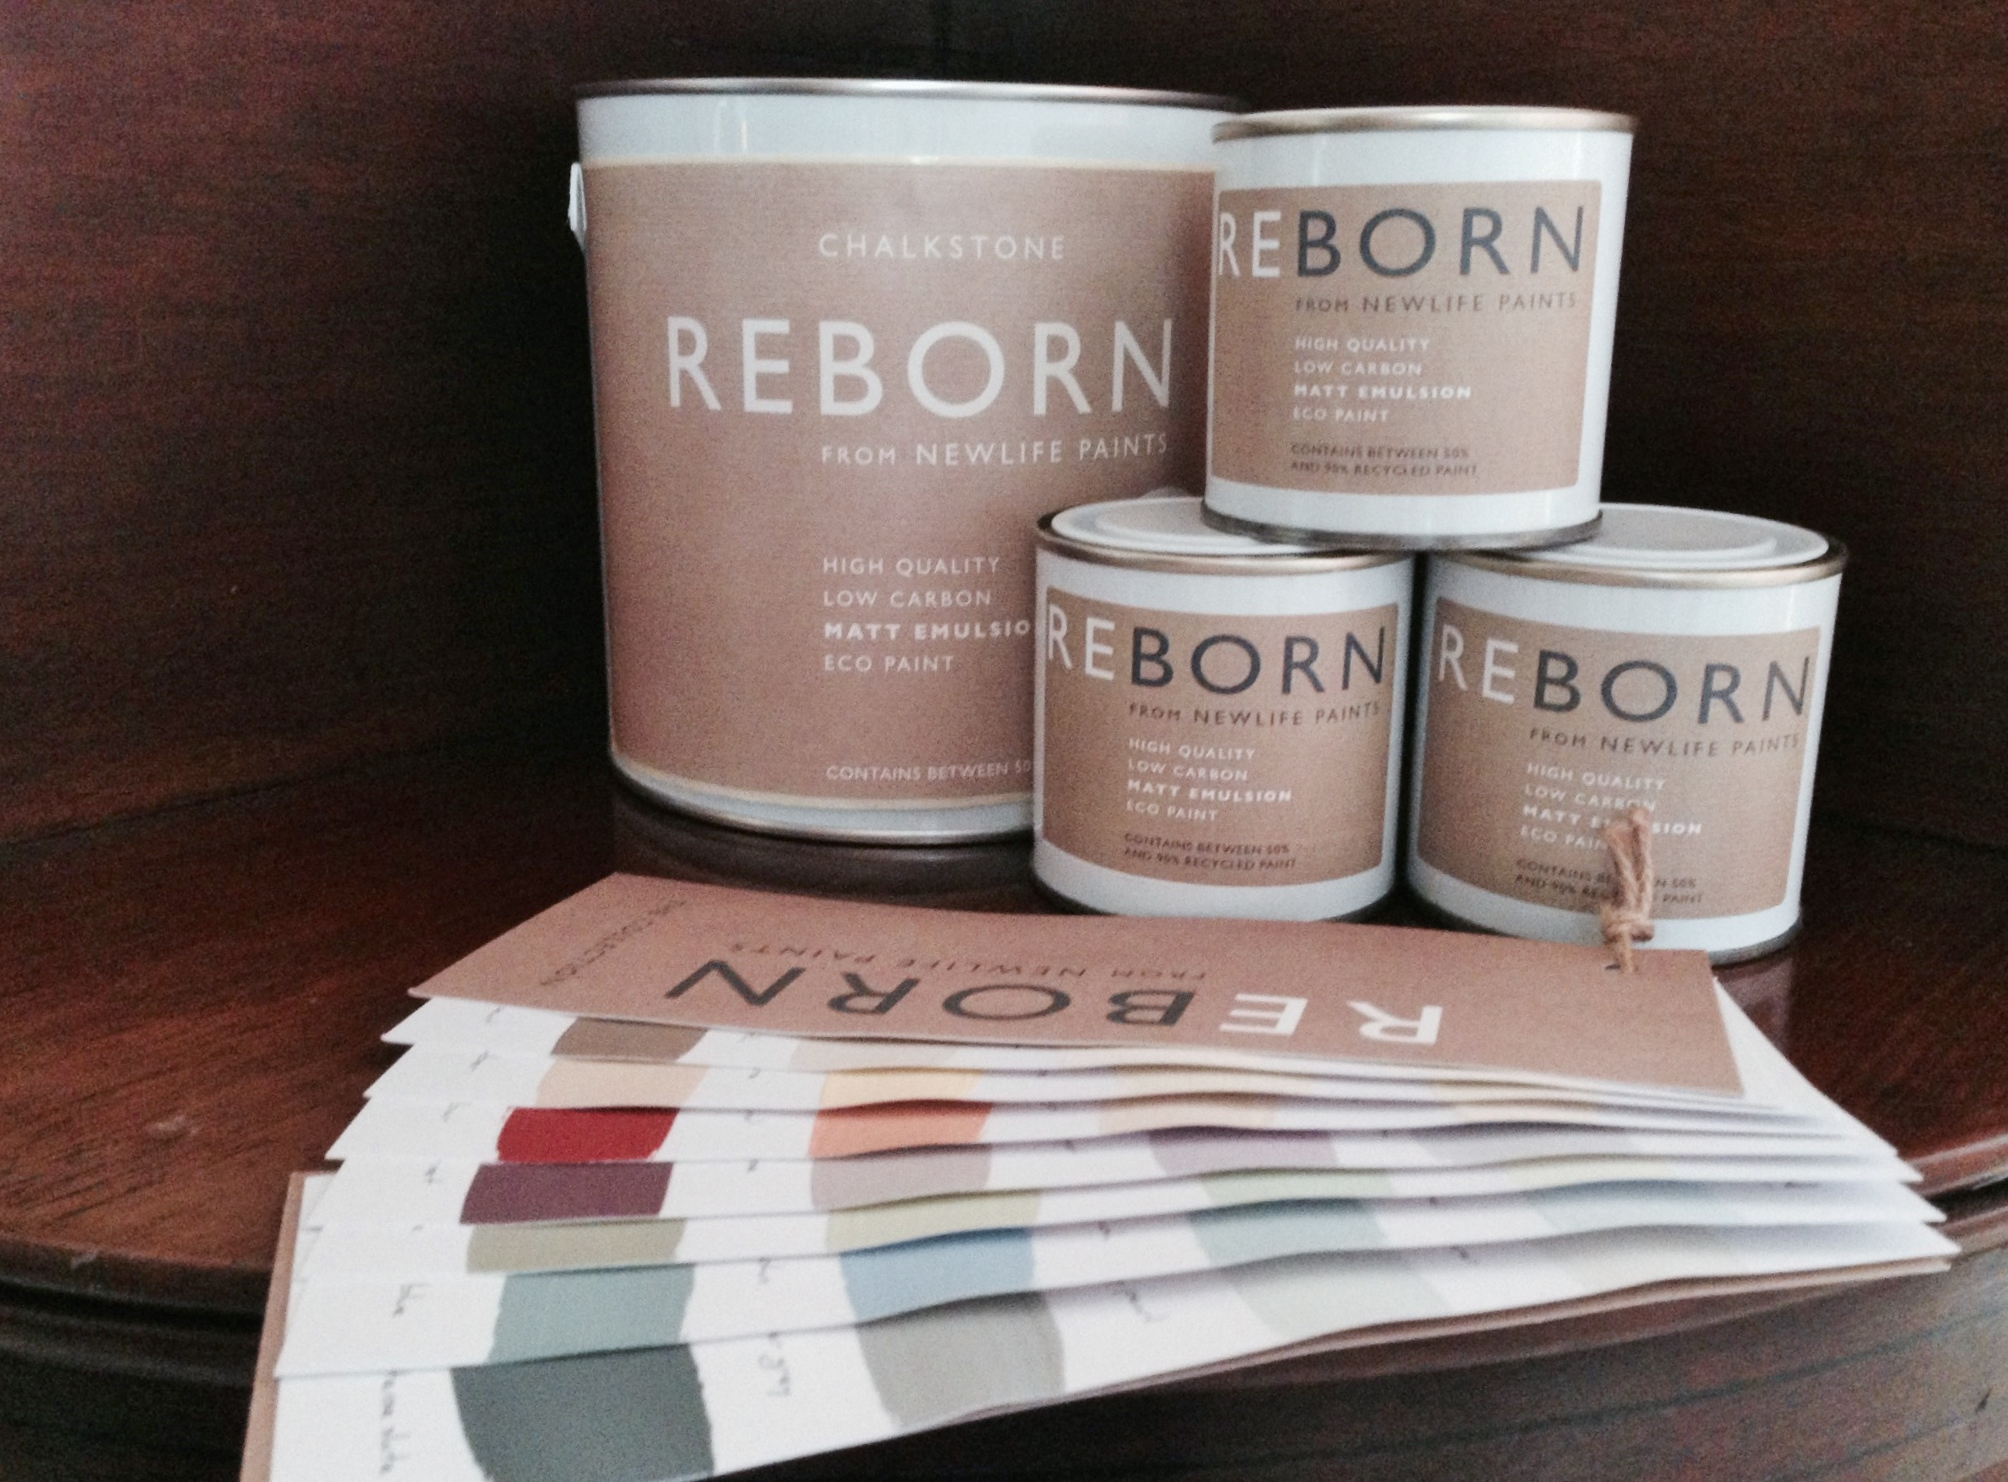 Reborn paints - recycled paint from unwanted paint from household tips